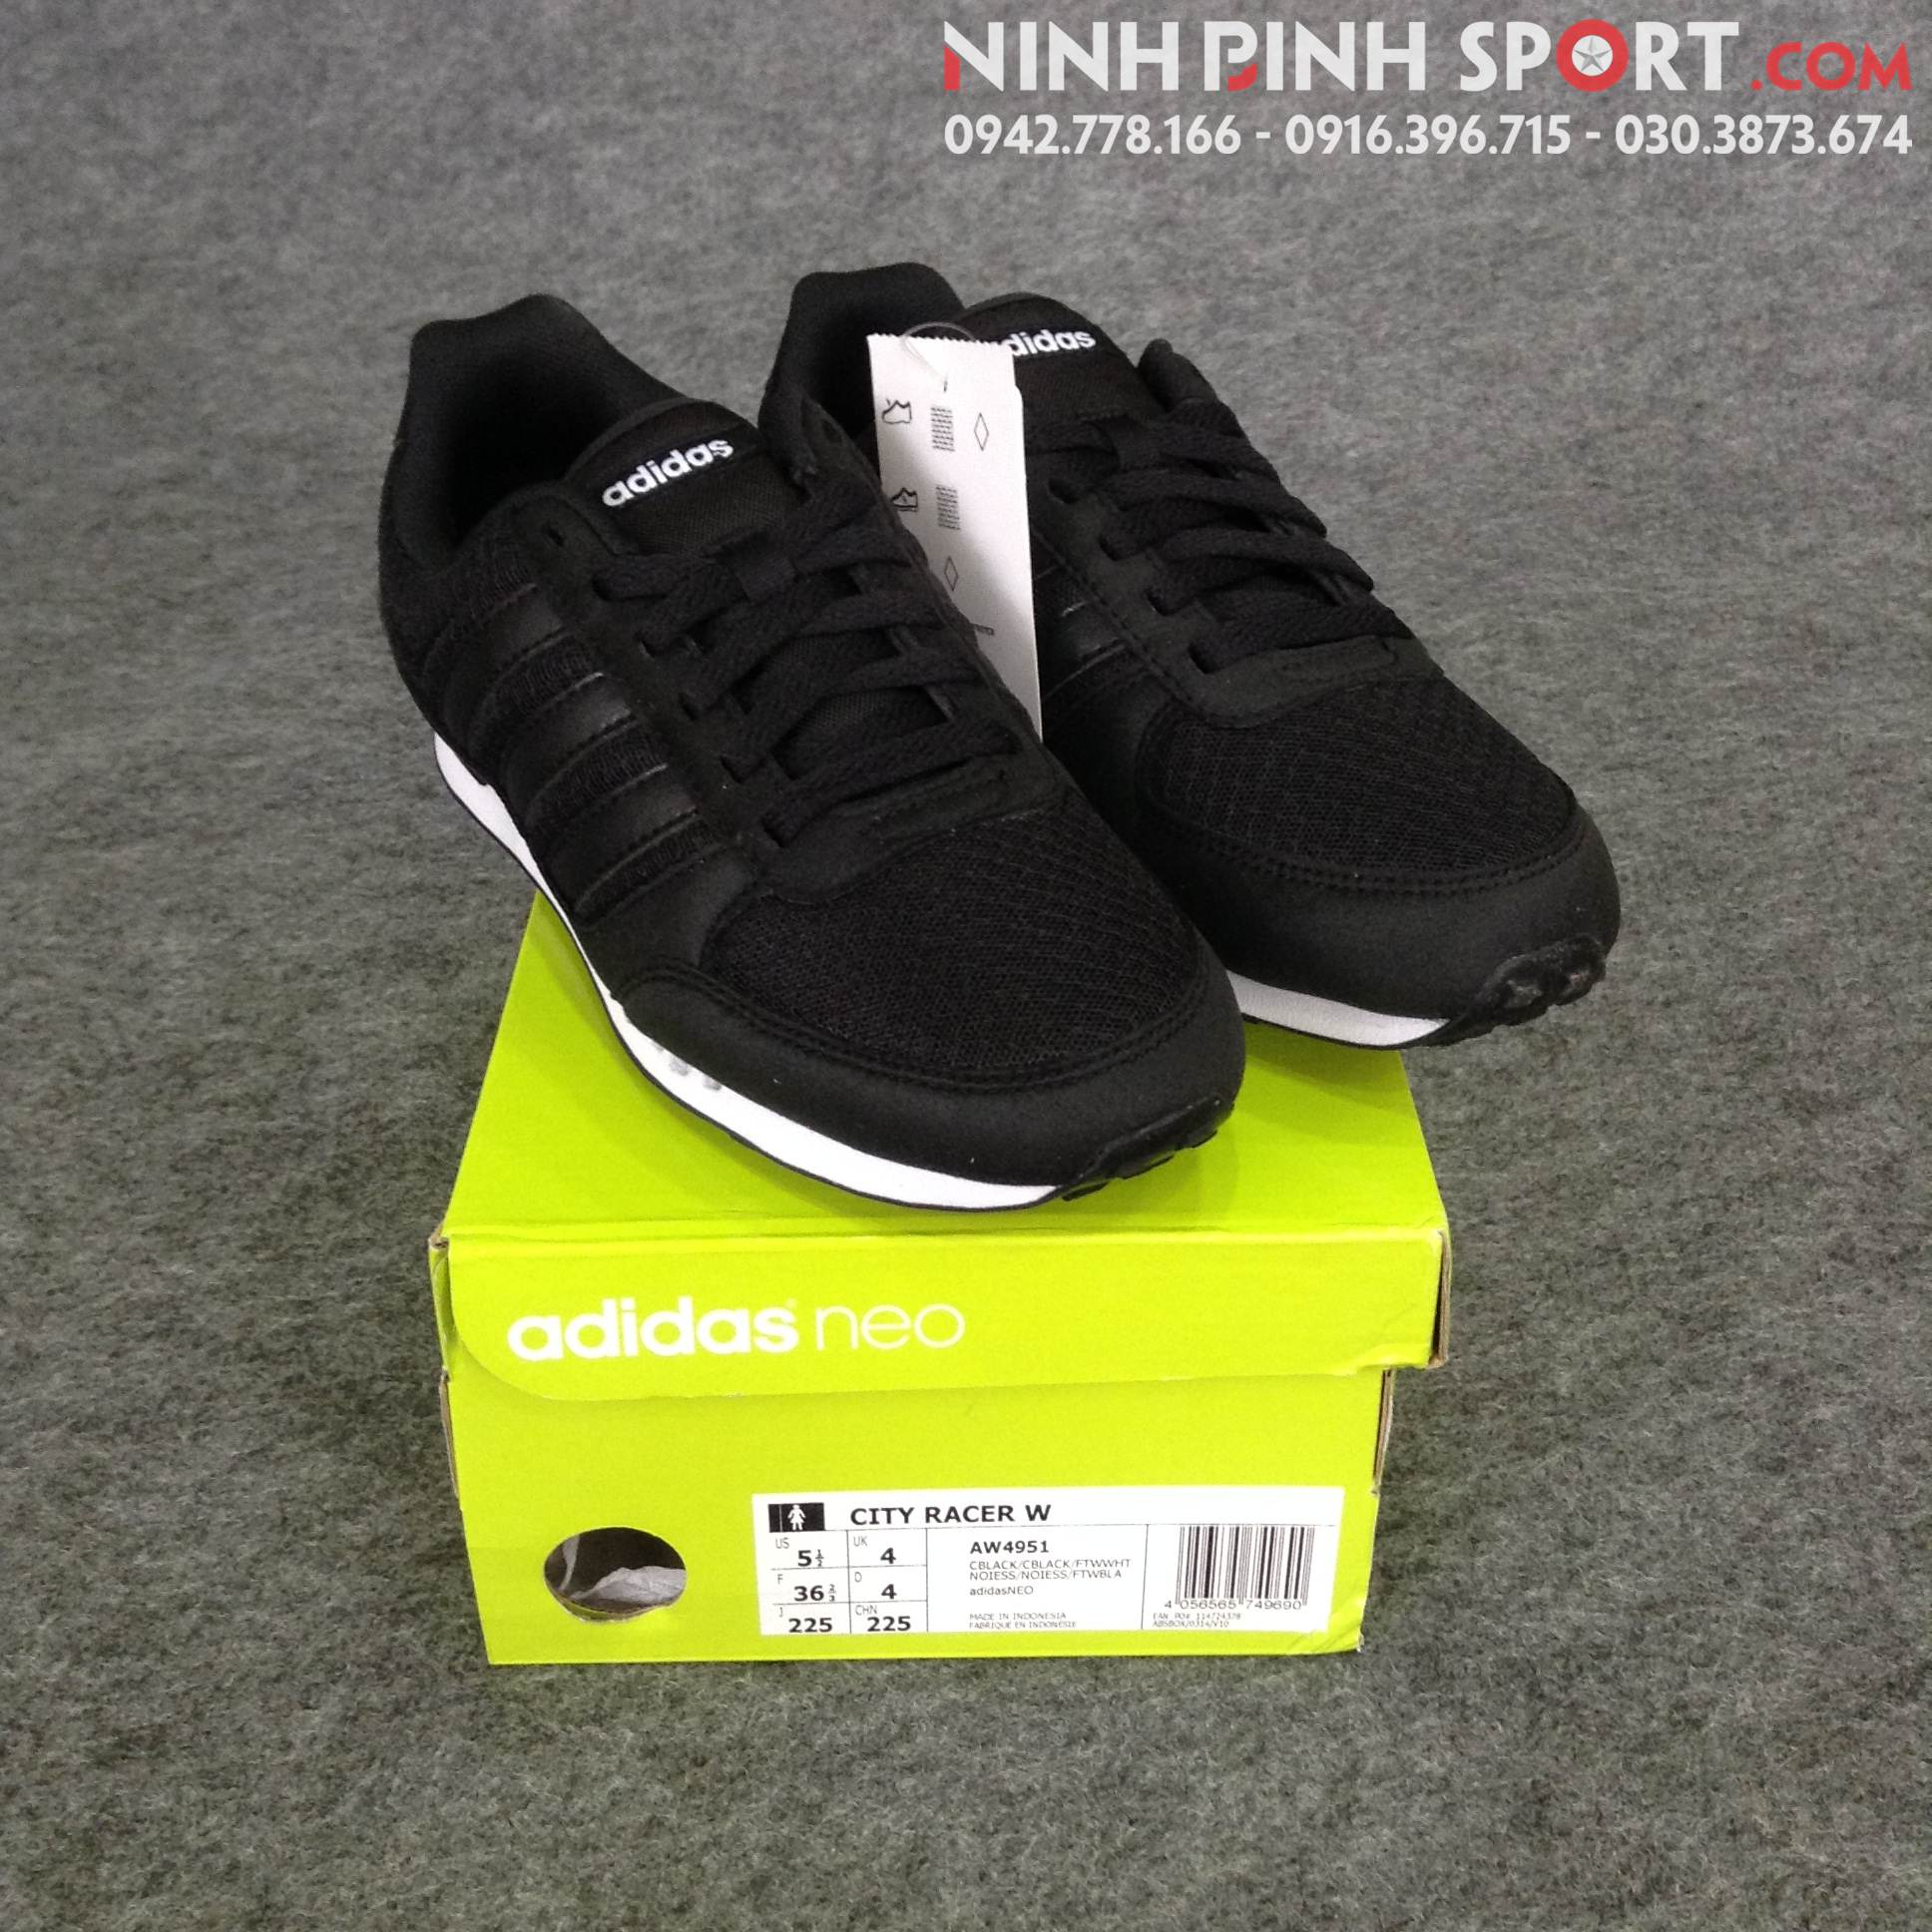 Giày thể thao nữ Adidas Neo City Racer Shoes - Black AW4951